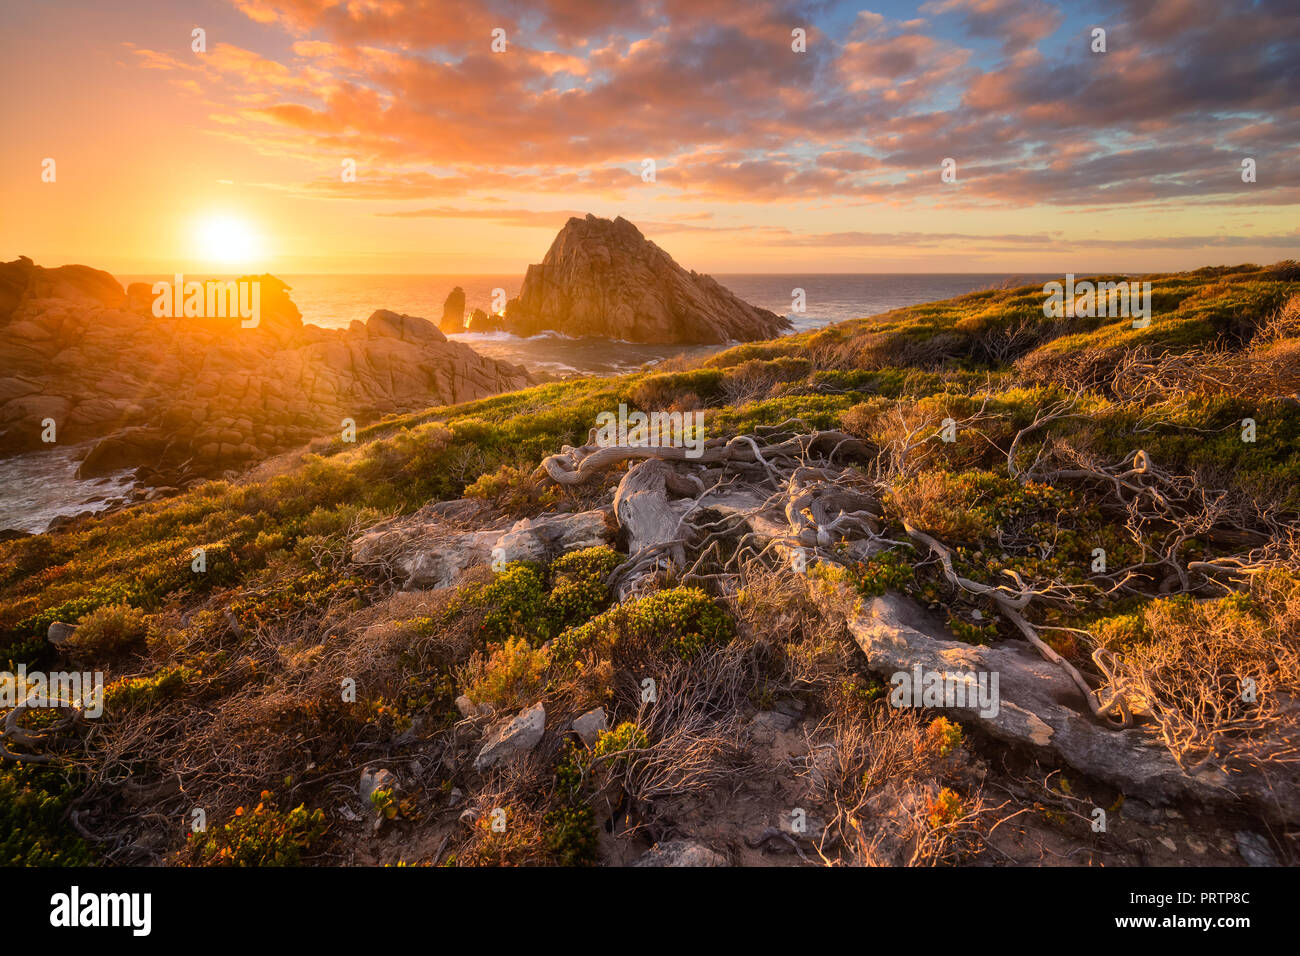 Sugarloaf Rock Stockbild